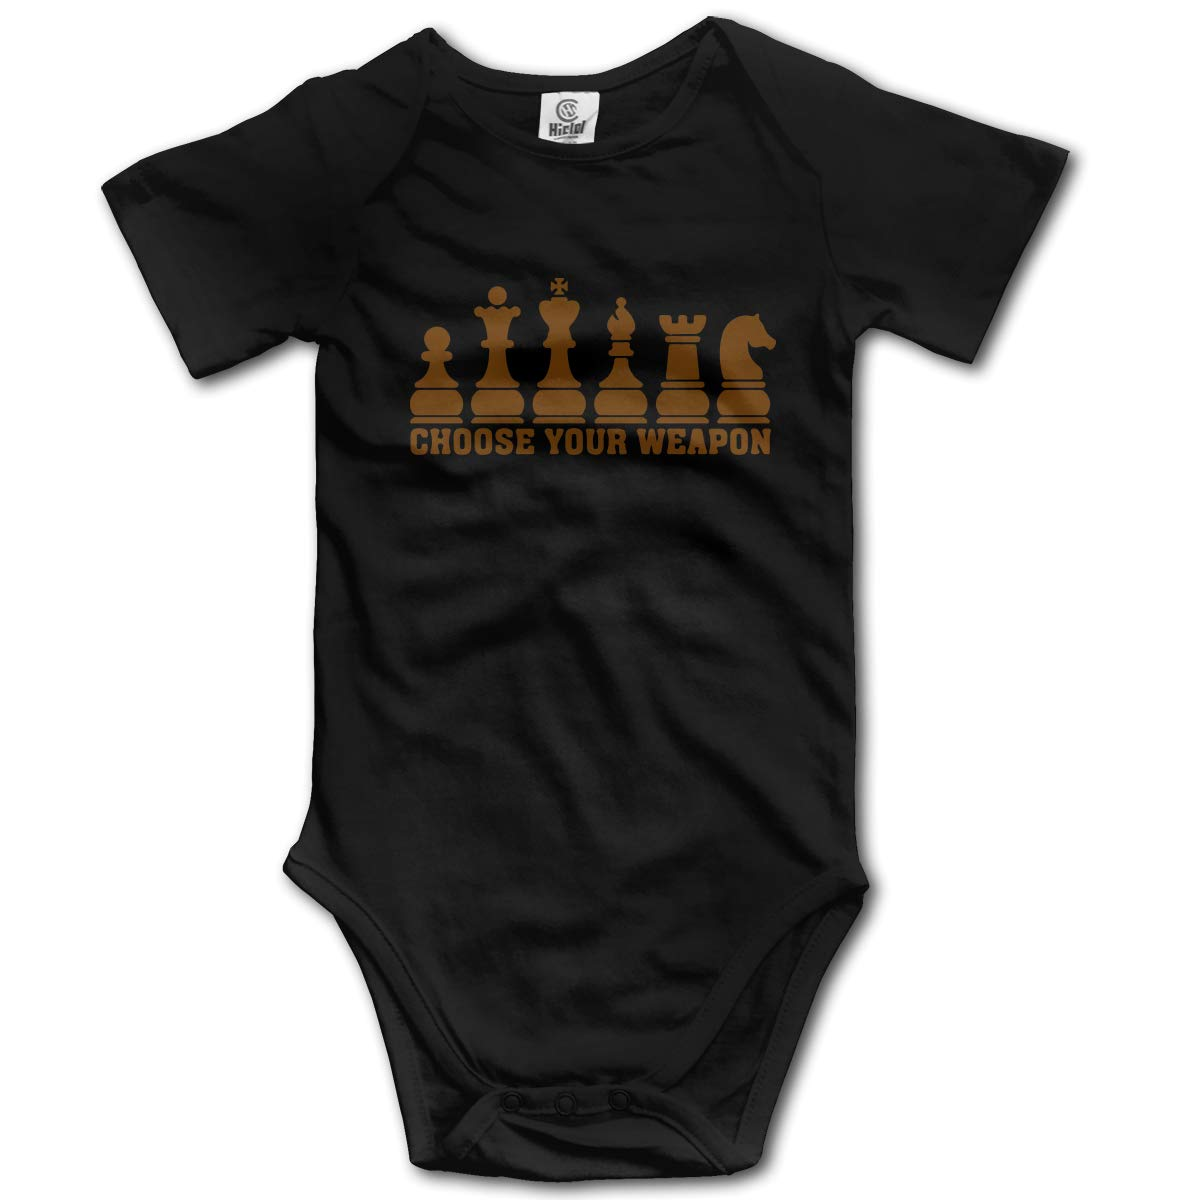 Chess Club Choose Your Weapon-2 Newborn Infant Baby Short Sleeve One-Piece Coverall 0-24M